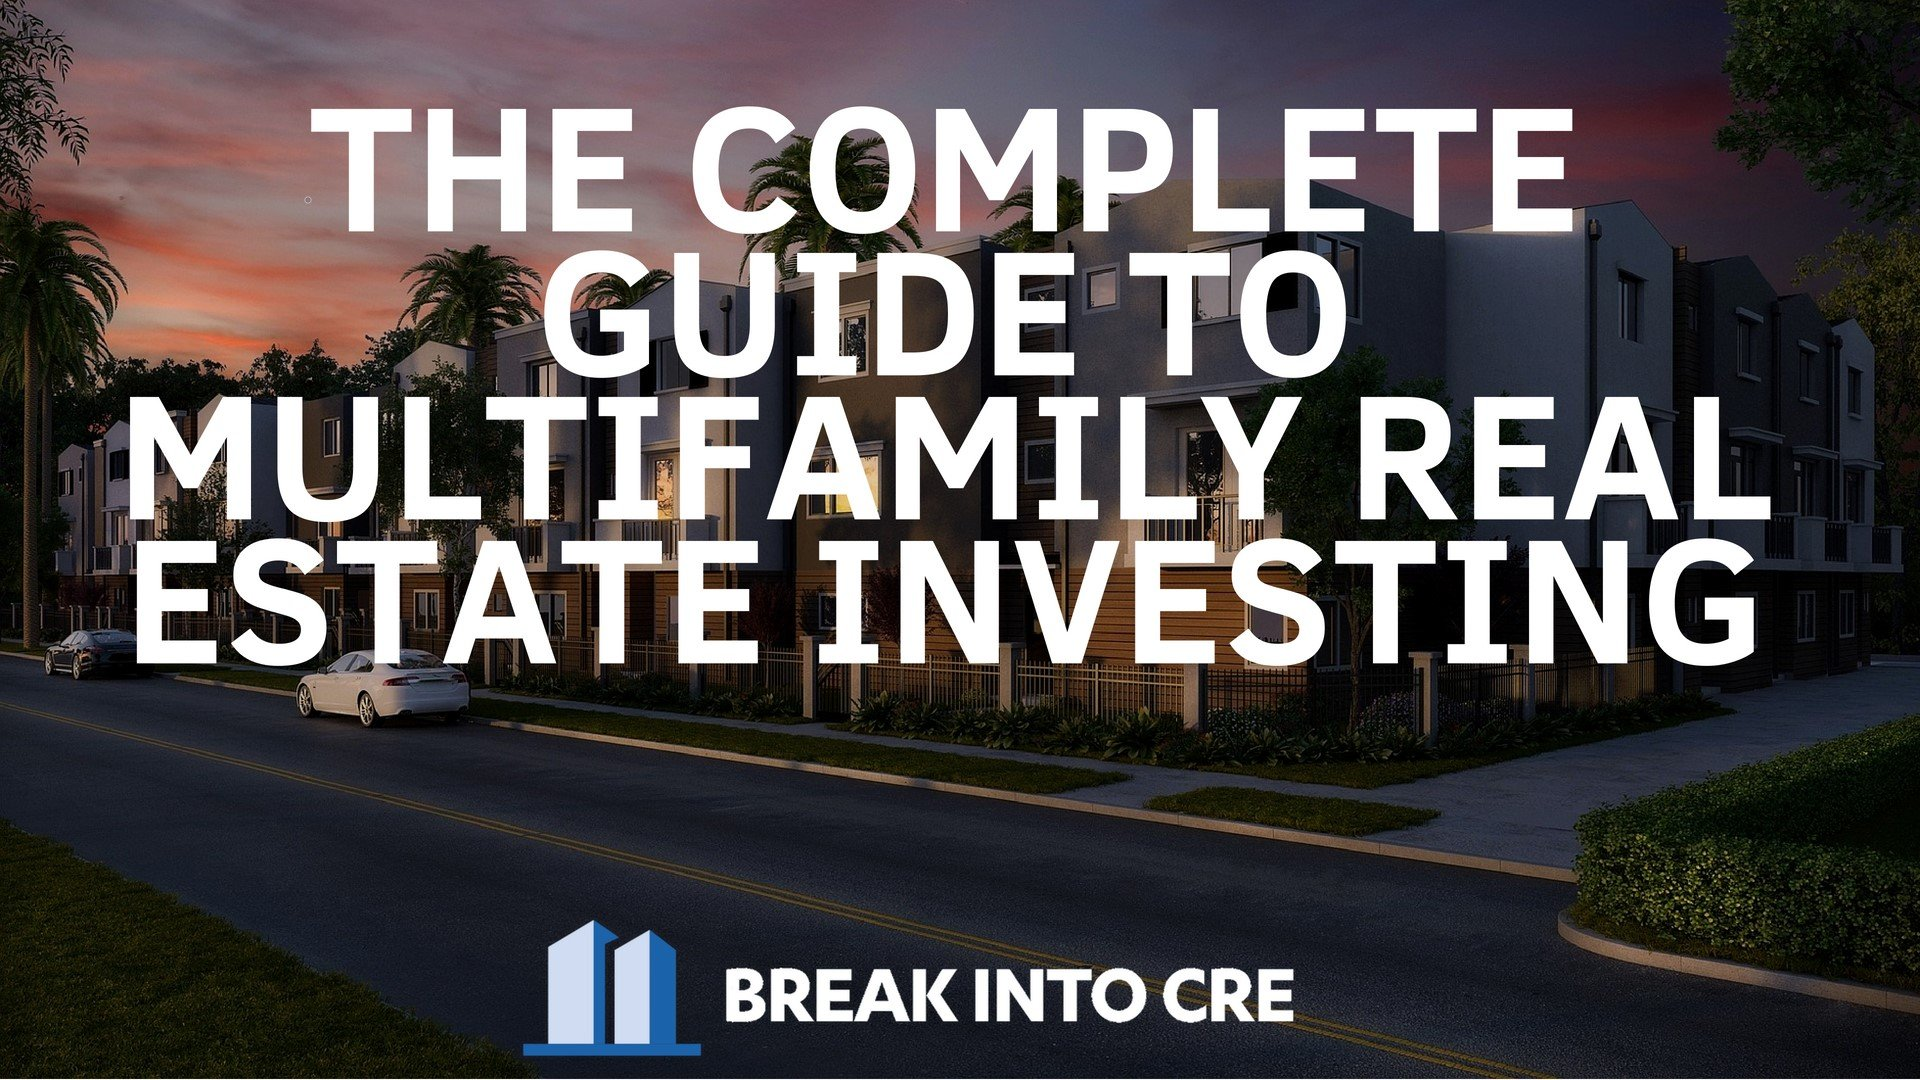 The Complete Guide To Multifamily Real Estate Investing | Justin